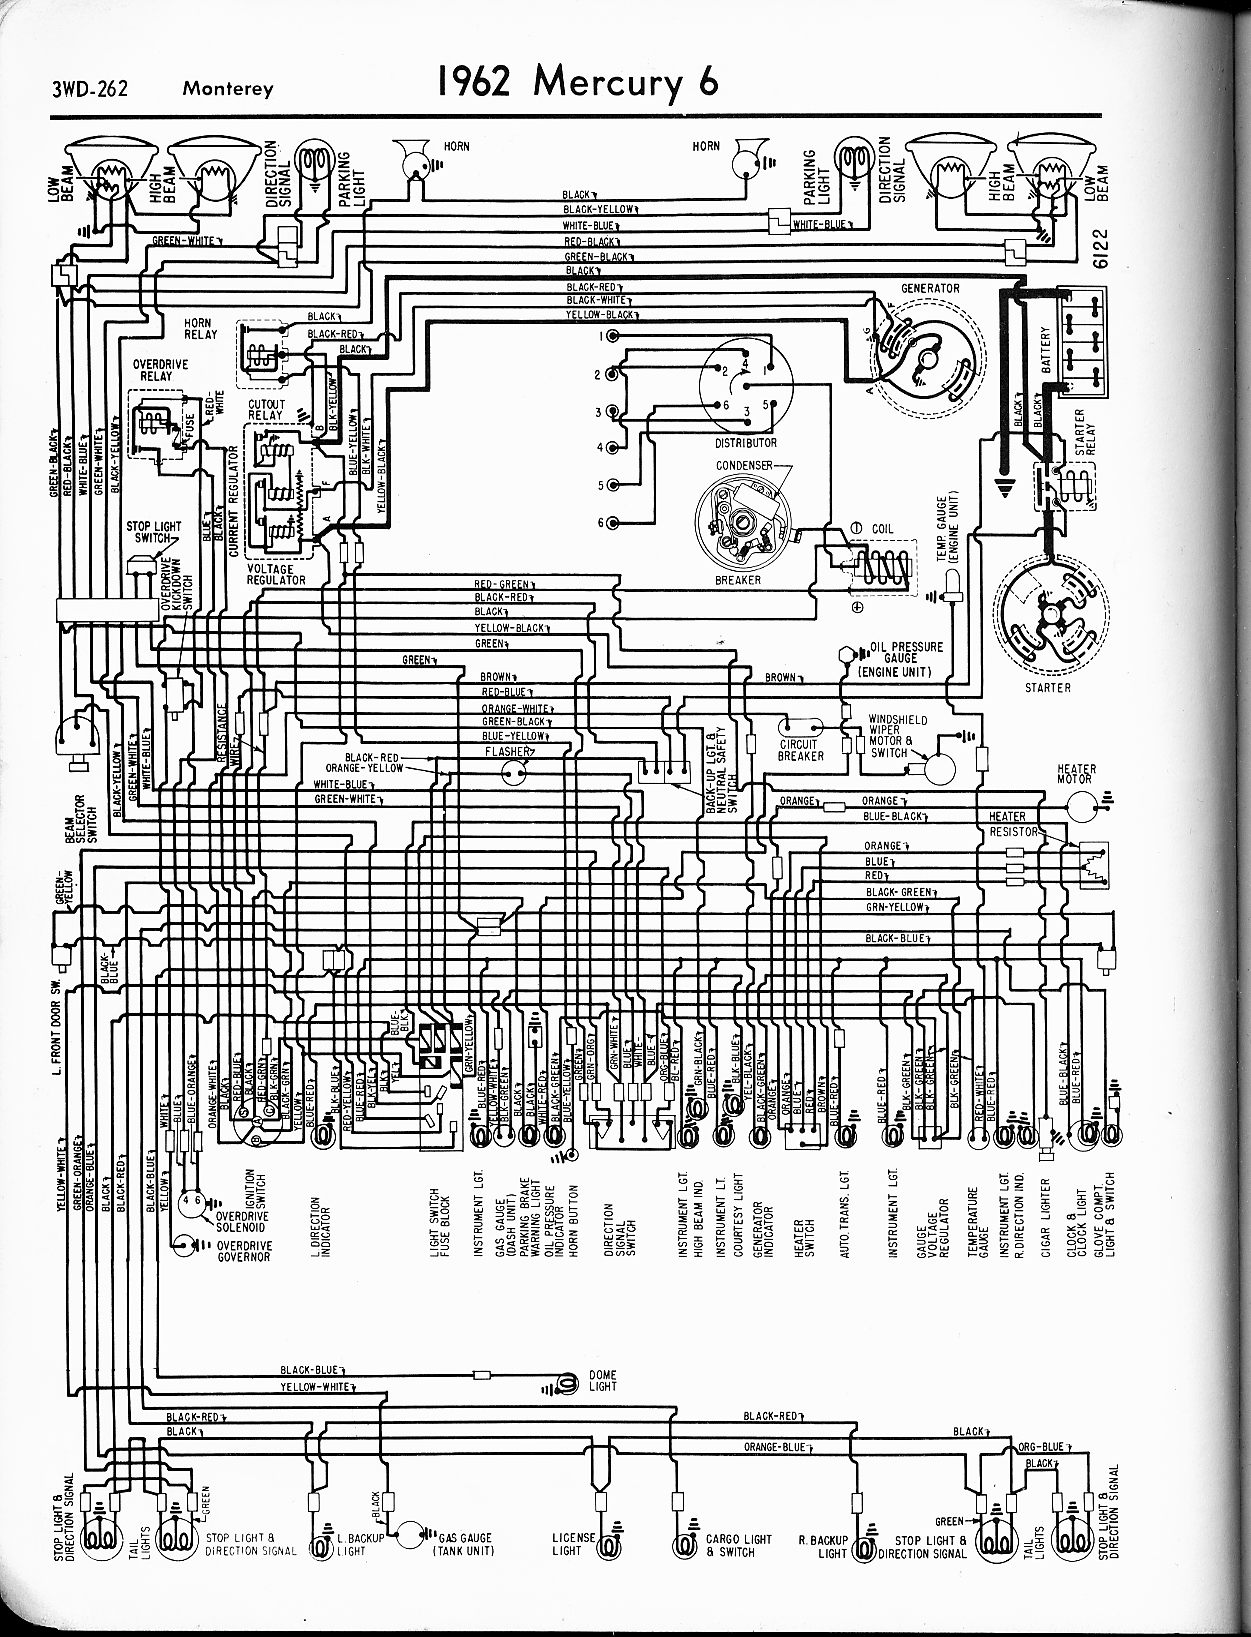 1964 mercury comet wiring diagram comet free printable wiring diagrams